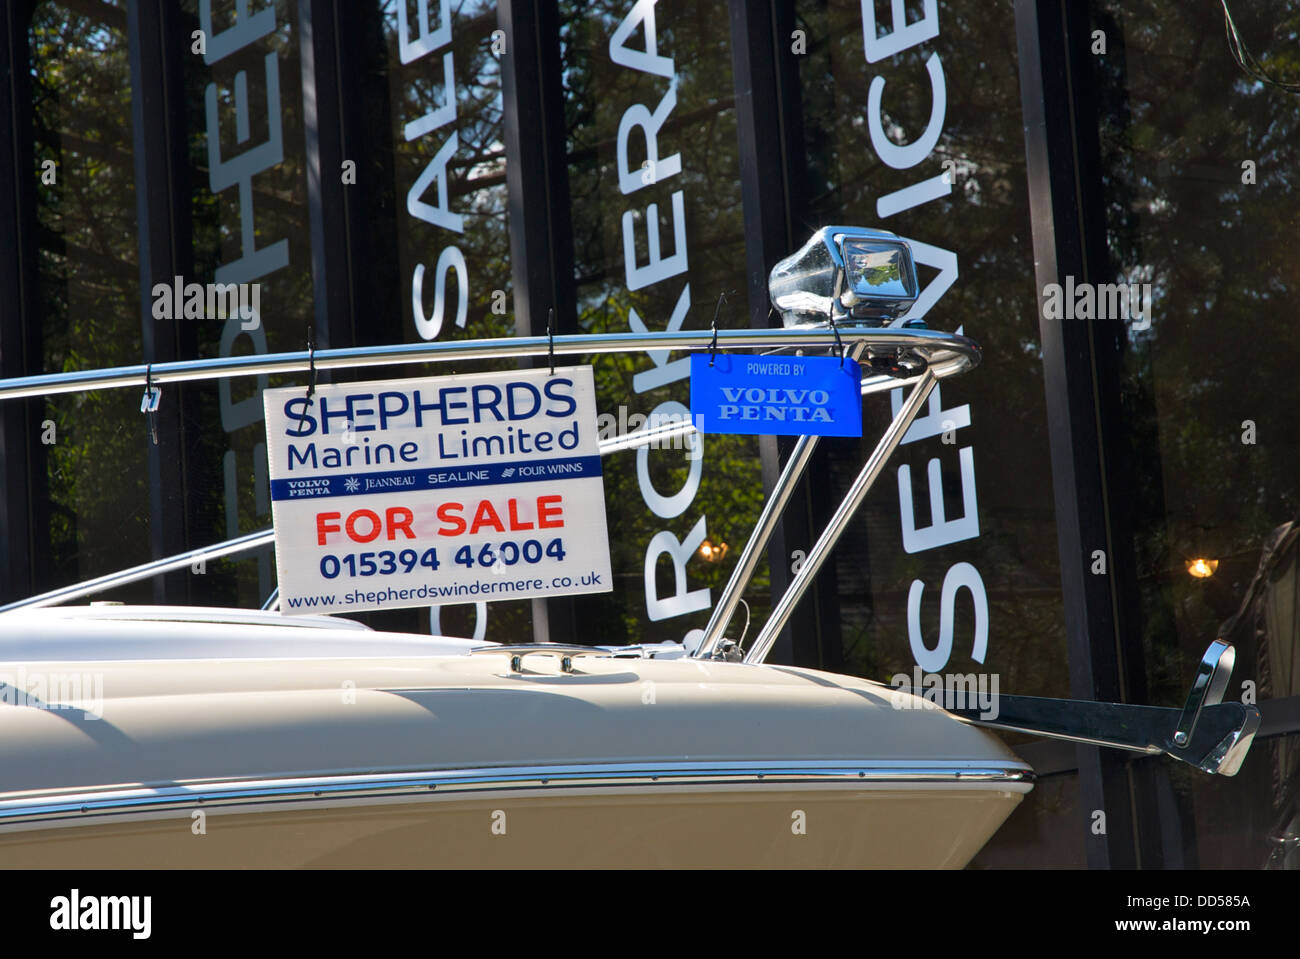 For Sale sign on speedboat, Bowness, Lake District National Park, Cumbria, England UK - Stock Image